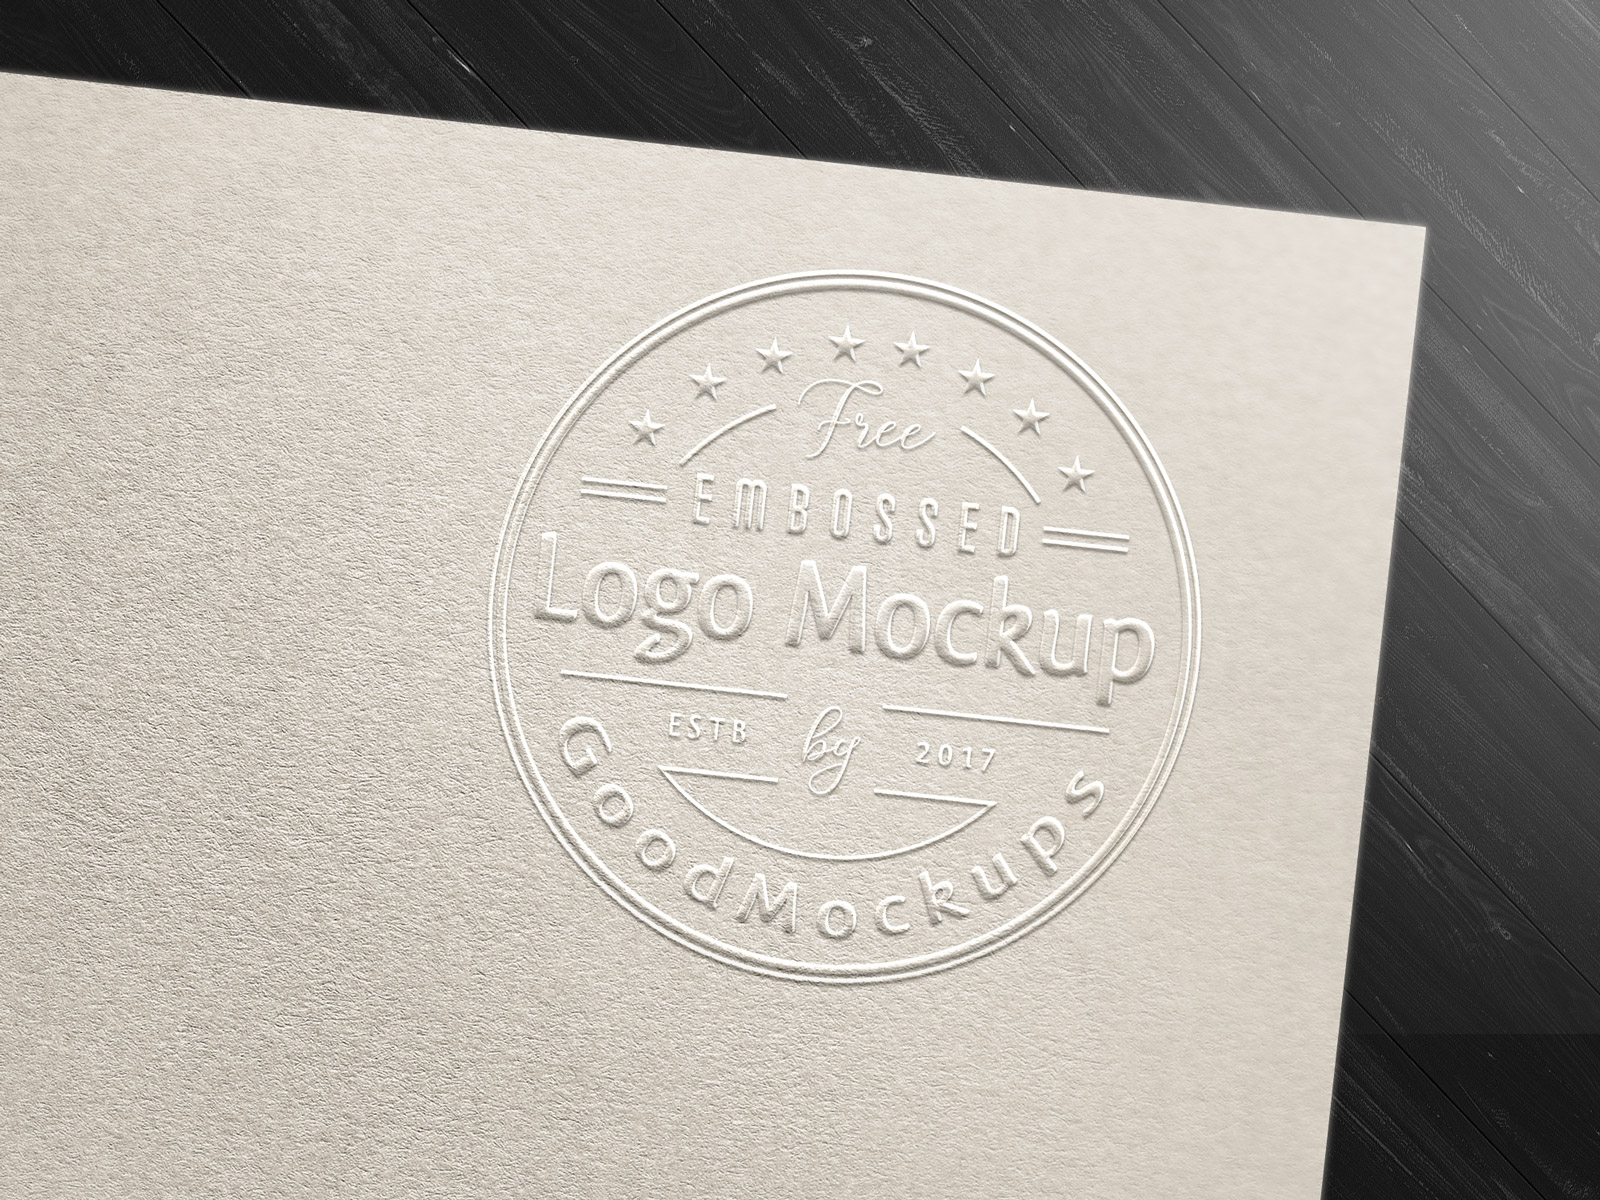 free fancy art card embossed logo mockup psd good mockups